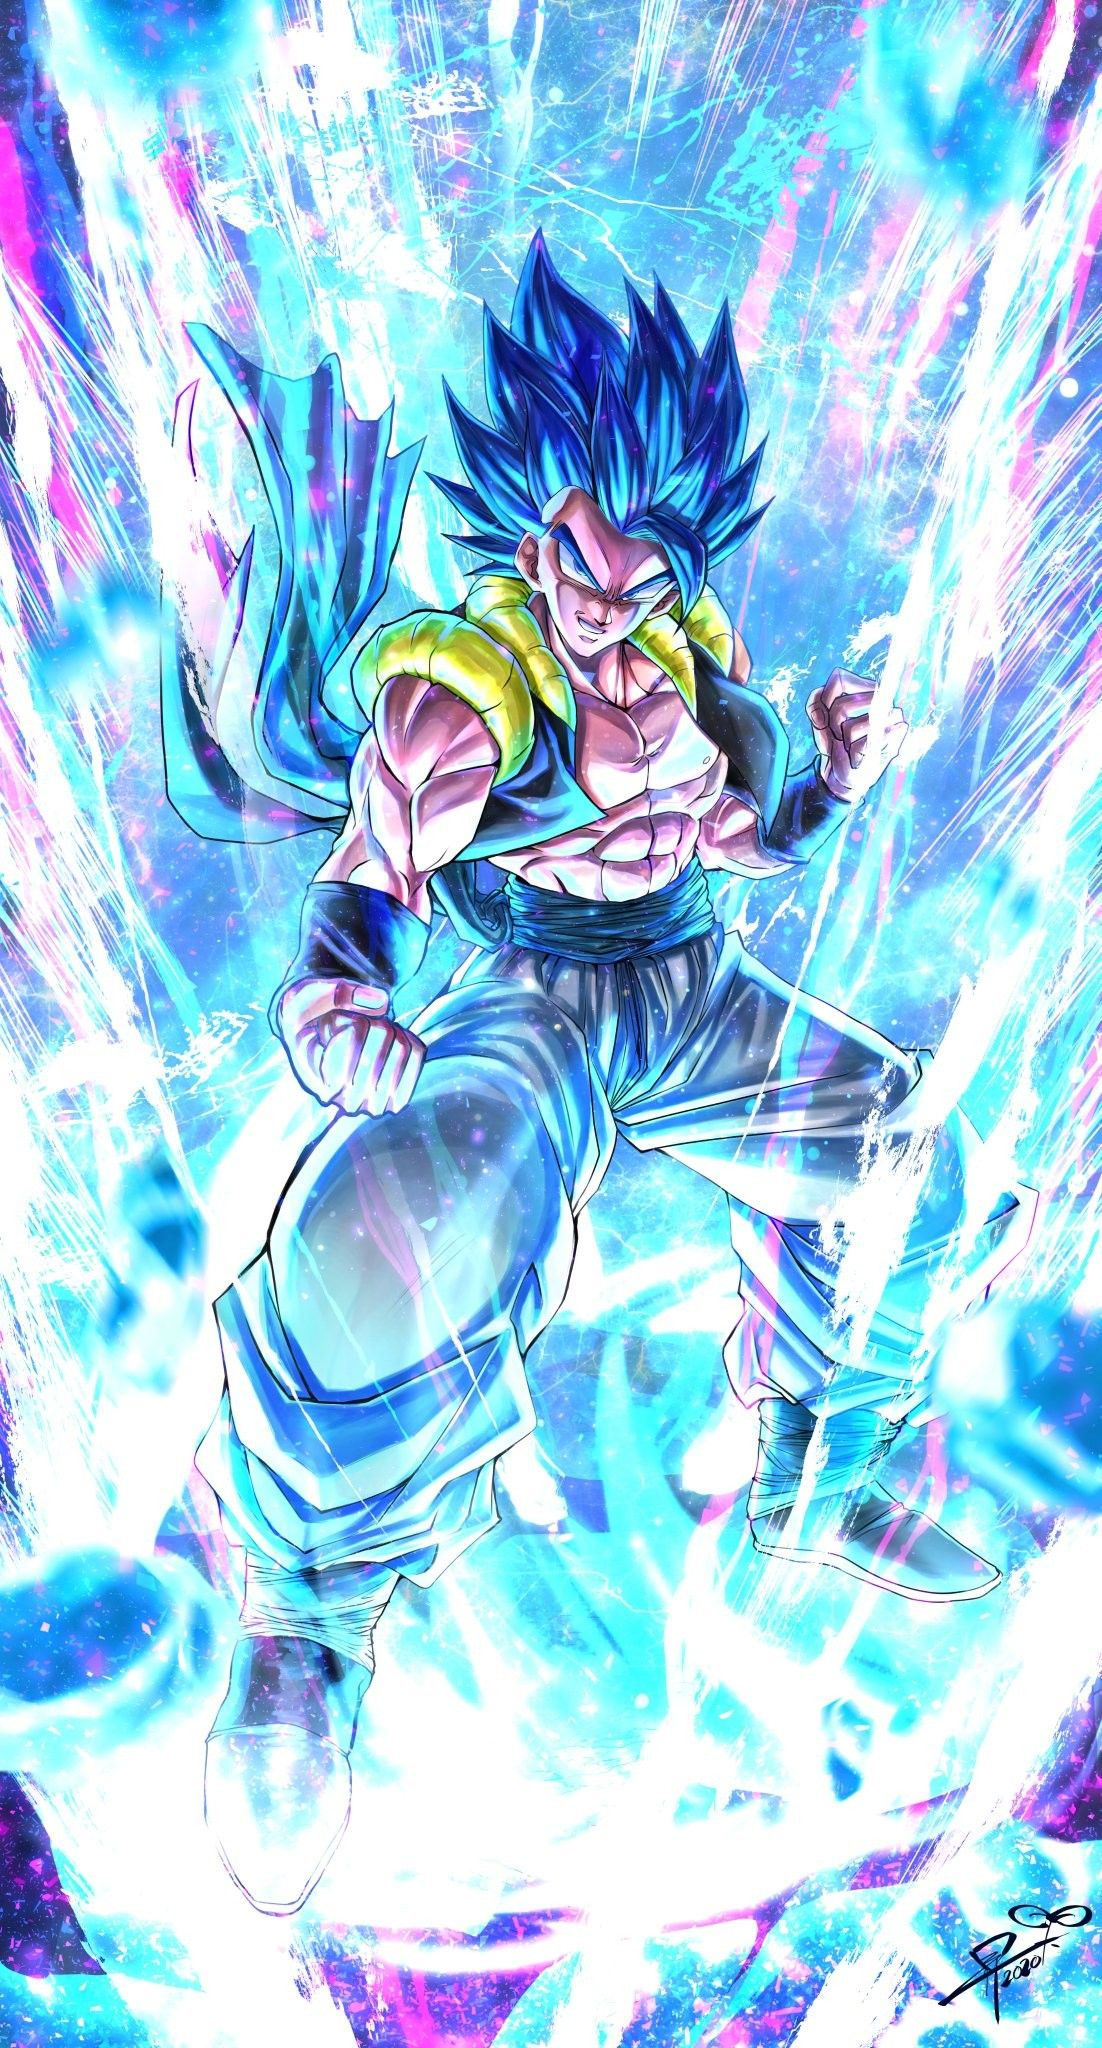 Gogeta By Sumutemu In 2020 Anime Dragon Ball Super Dragon Ball Wallpapers Dragon Ball Z